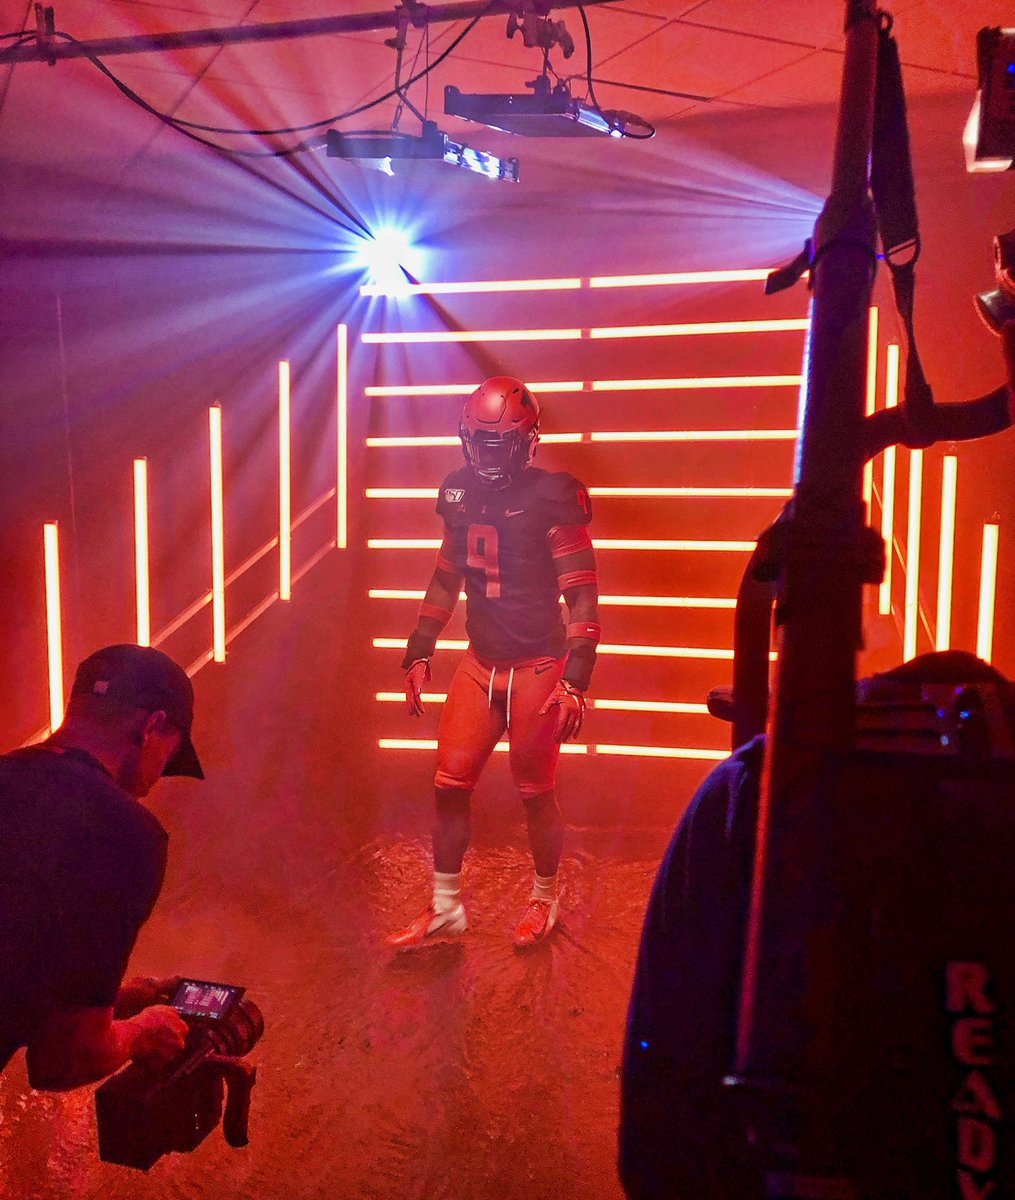 Video shoot was lit, literally.   #Illini x #JointheFight  <br>http://pic.twitter.com/7flFyS4SuG